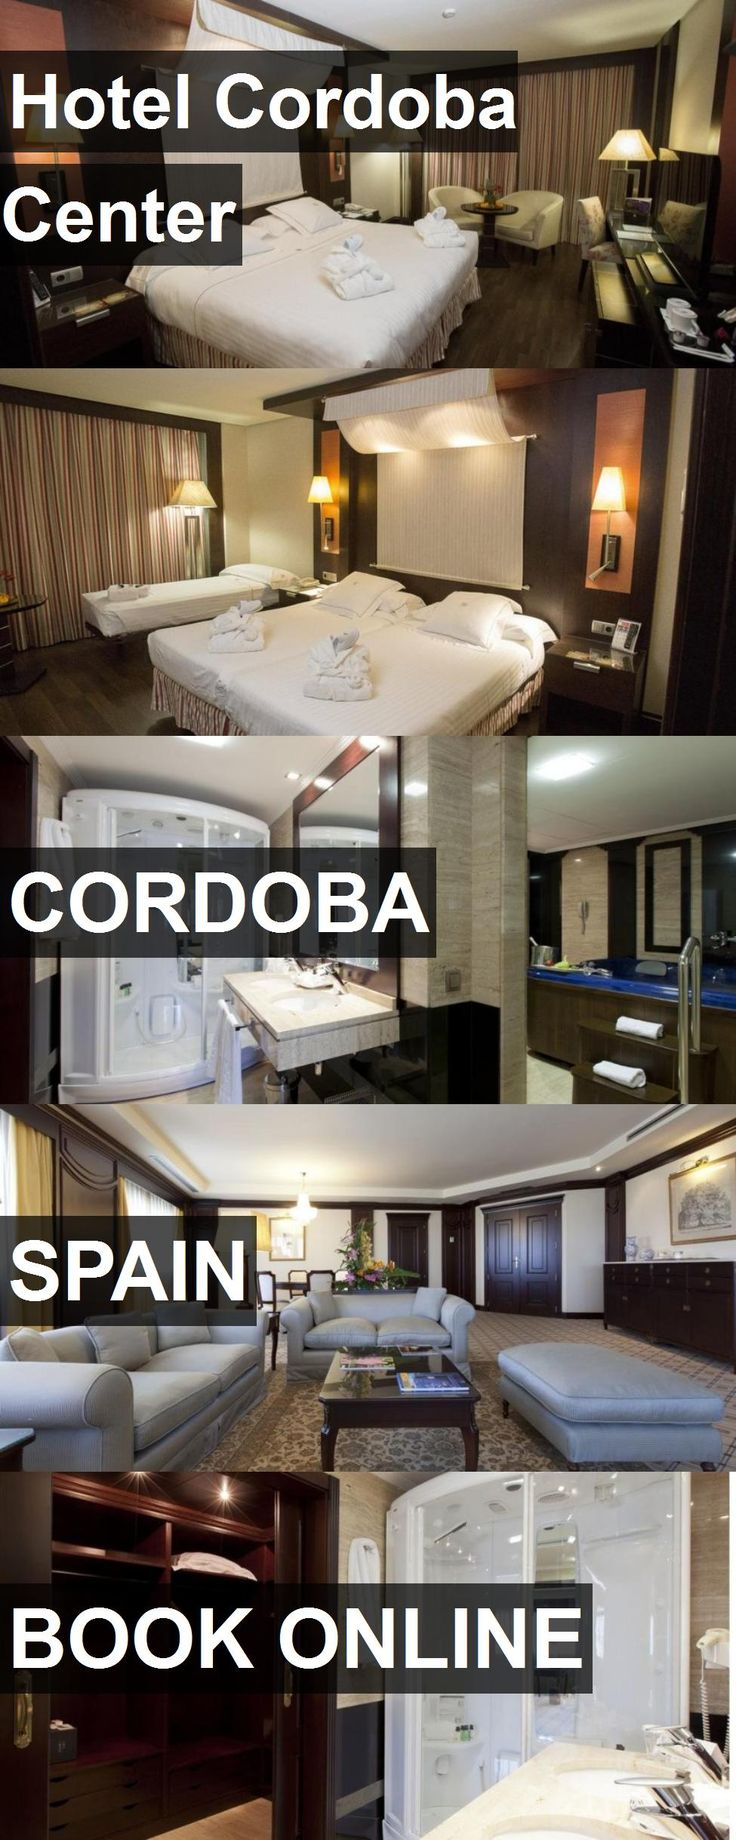 Hotel Cordoba Center in Cordoba, Spain. For more information, photos, reviews and best prices please follow the link. #Spain #Cordoba #travel #vacation #hotel